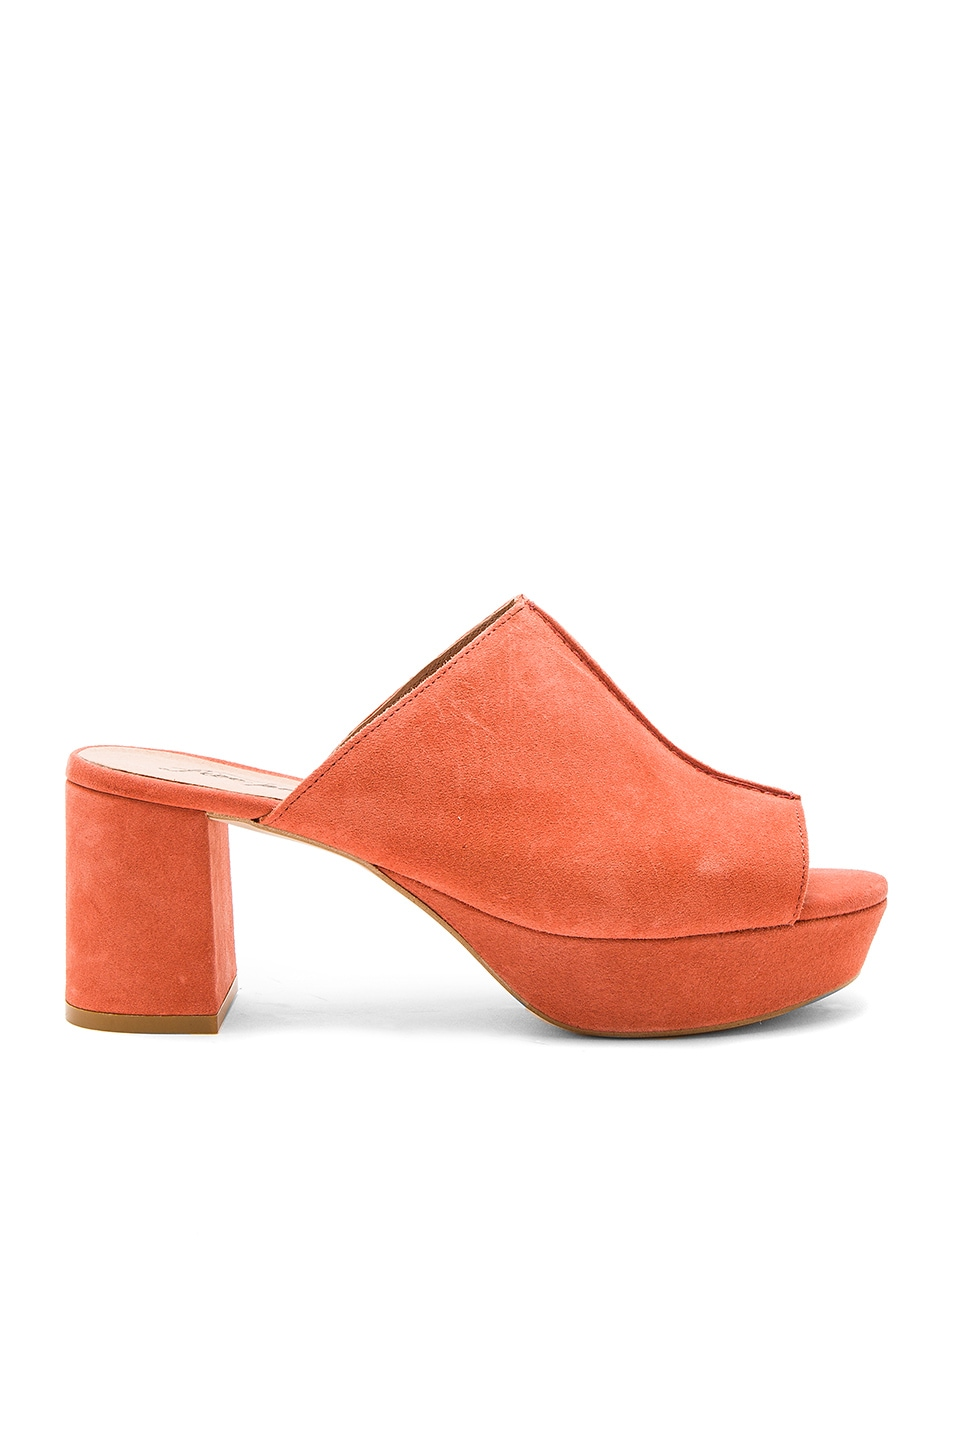 Free People Moody Mule in Coral